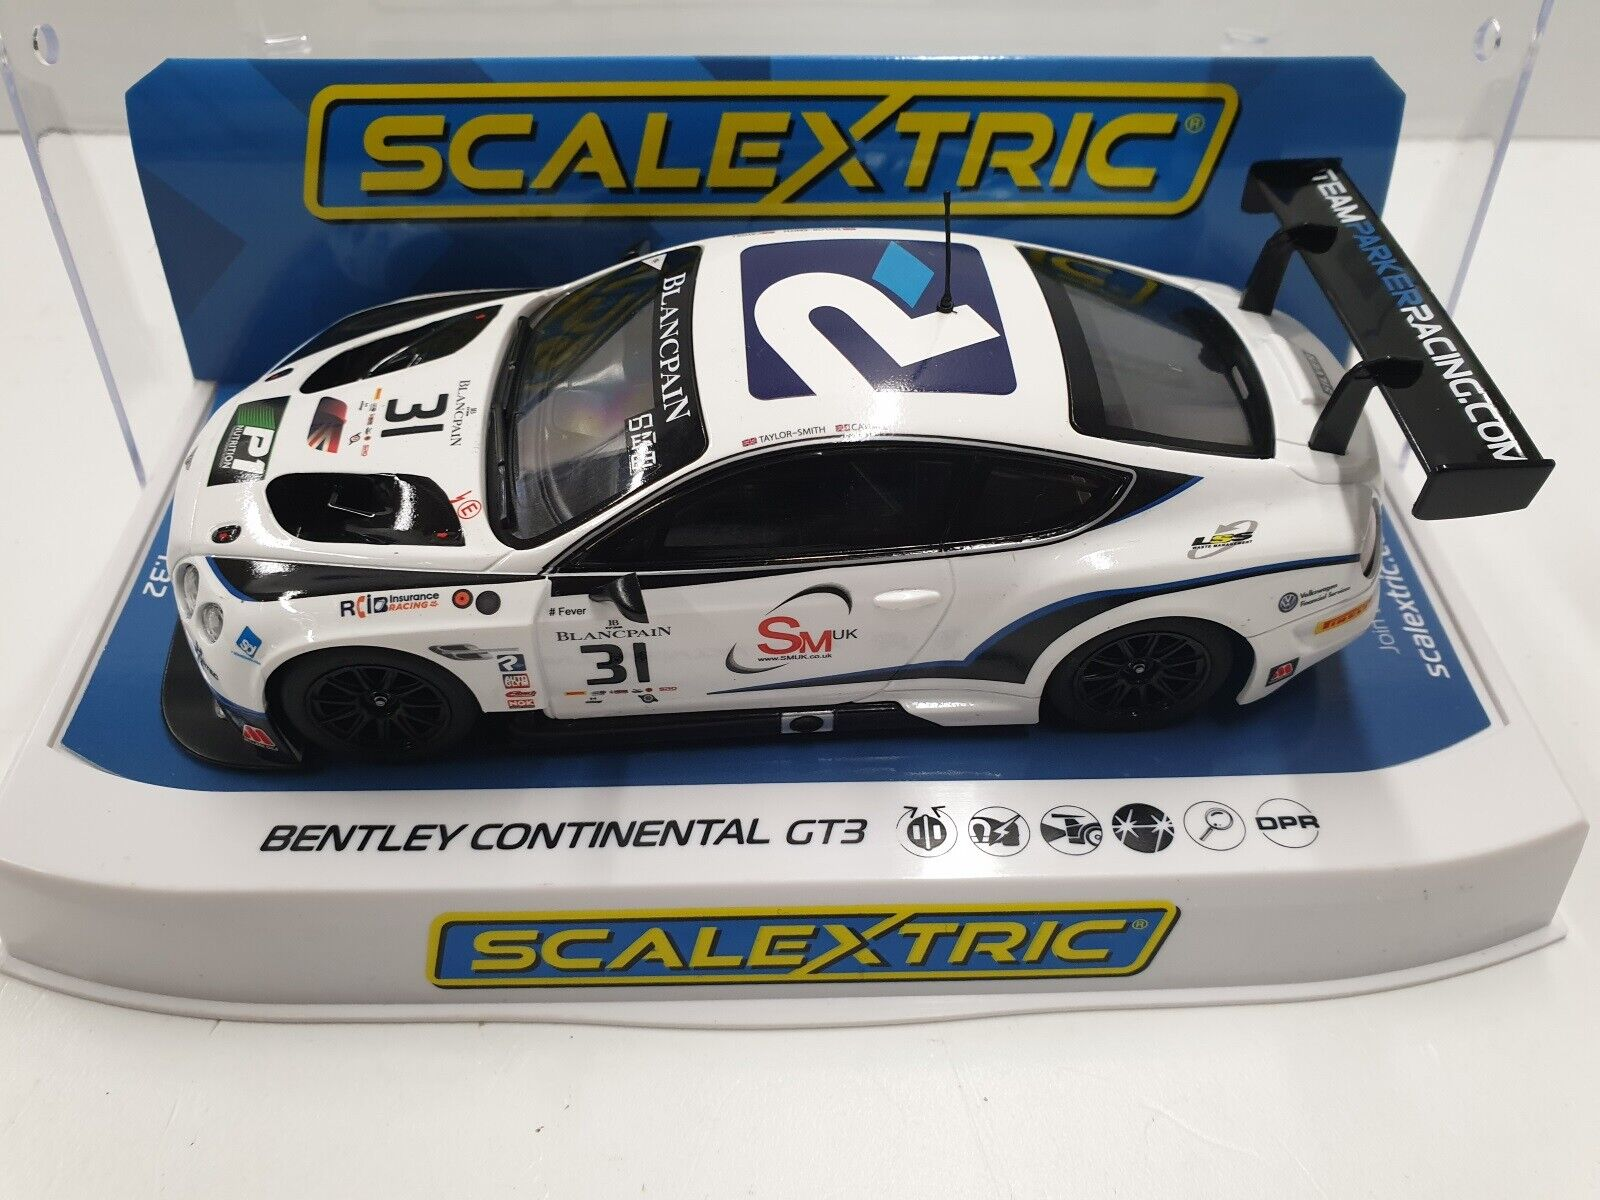 Scalextric 1 3 2 Bentley Continental GT3 Parker Racing Nr. 31 HD C4024